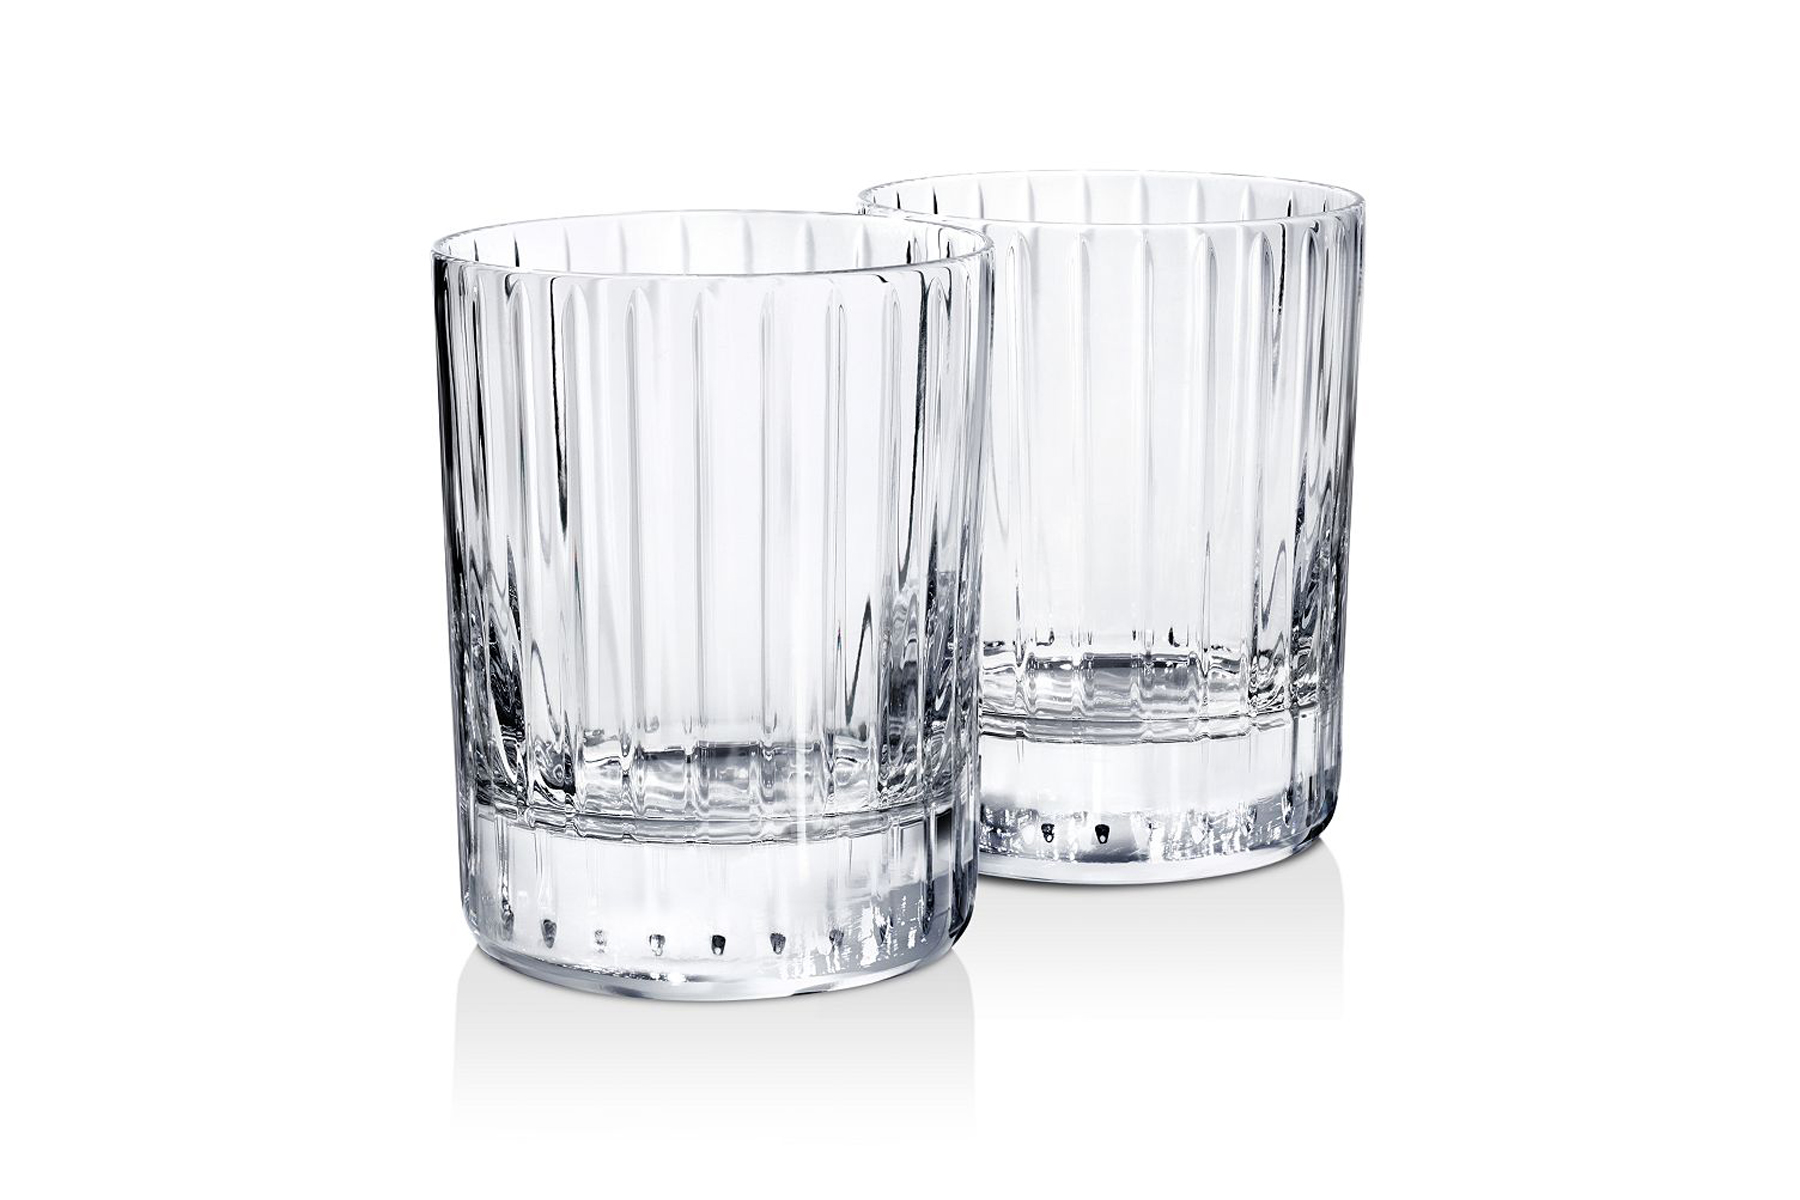 Baccarat double Old Fashioned tumbler set